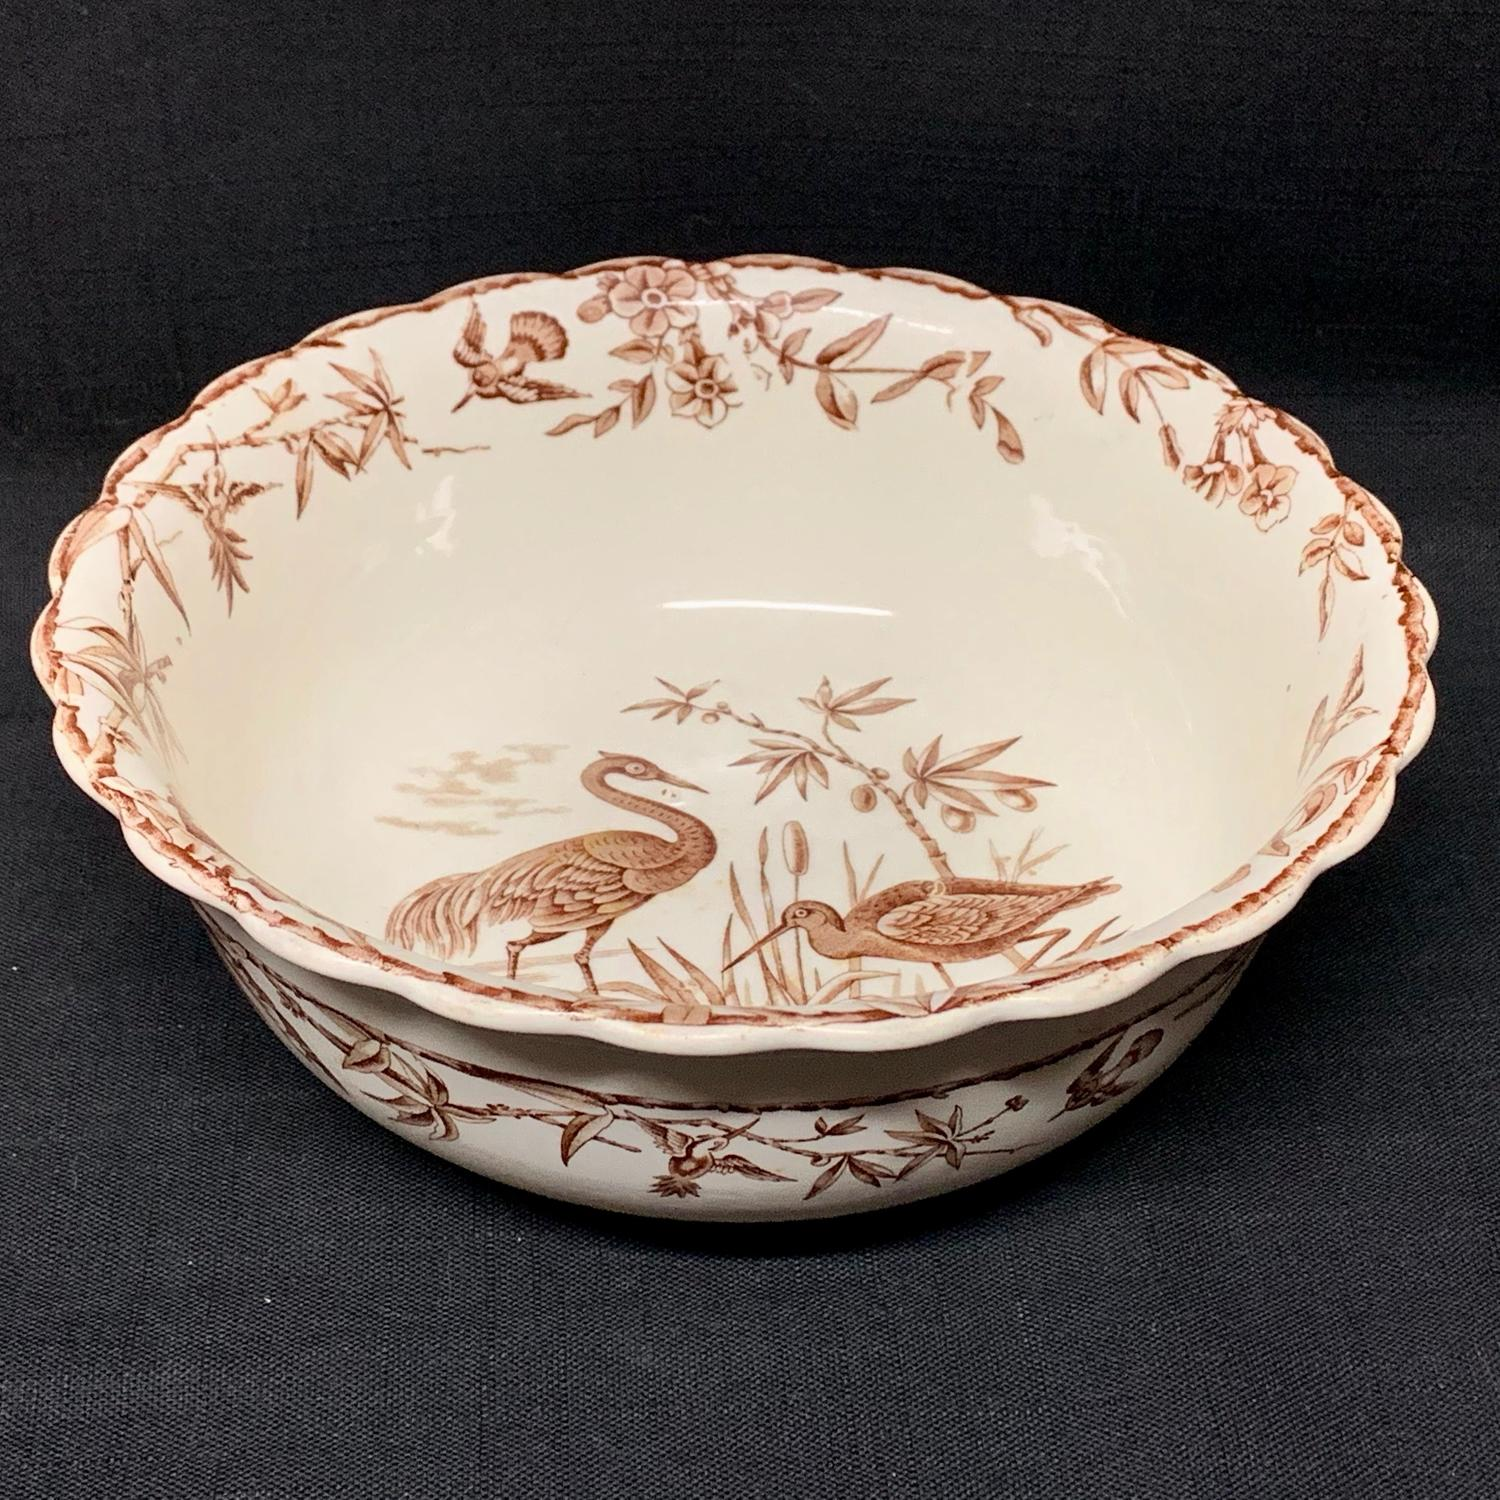 Large Brown Ridgway Staffordshire Potato Bowl ~ INDUS 1885